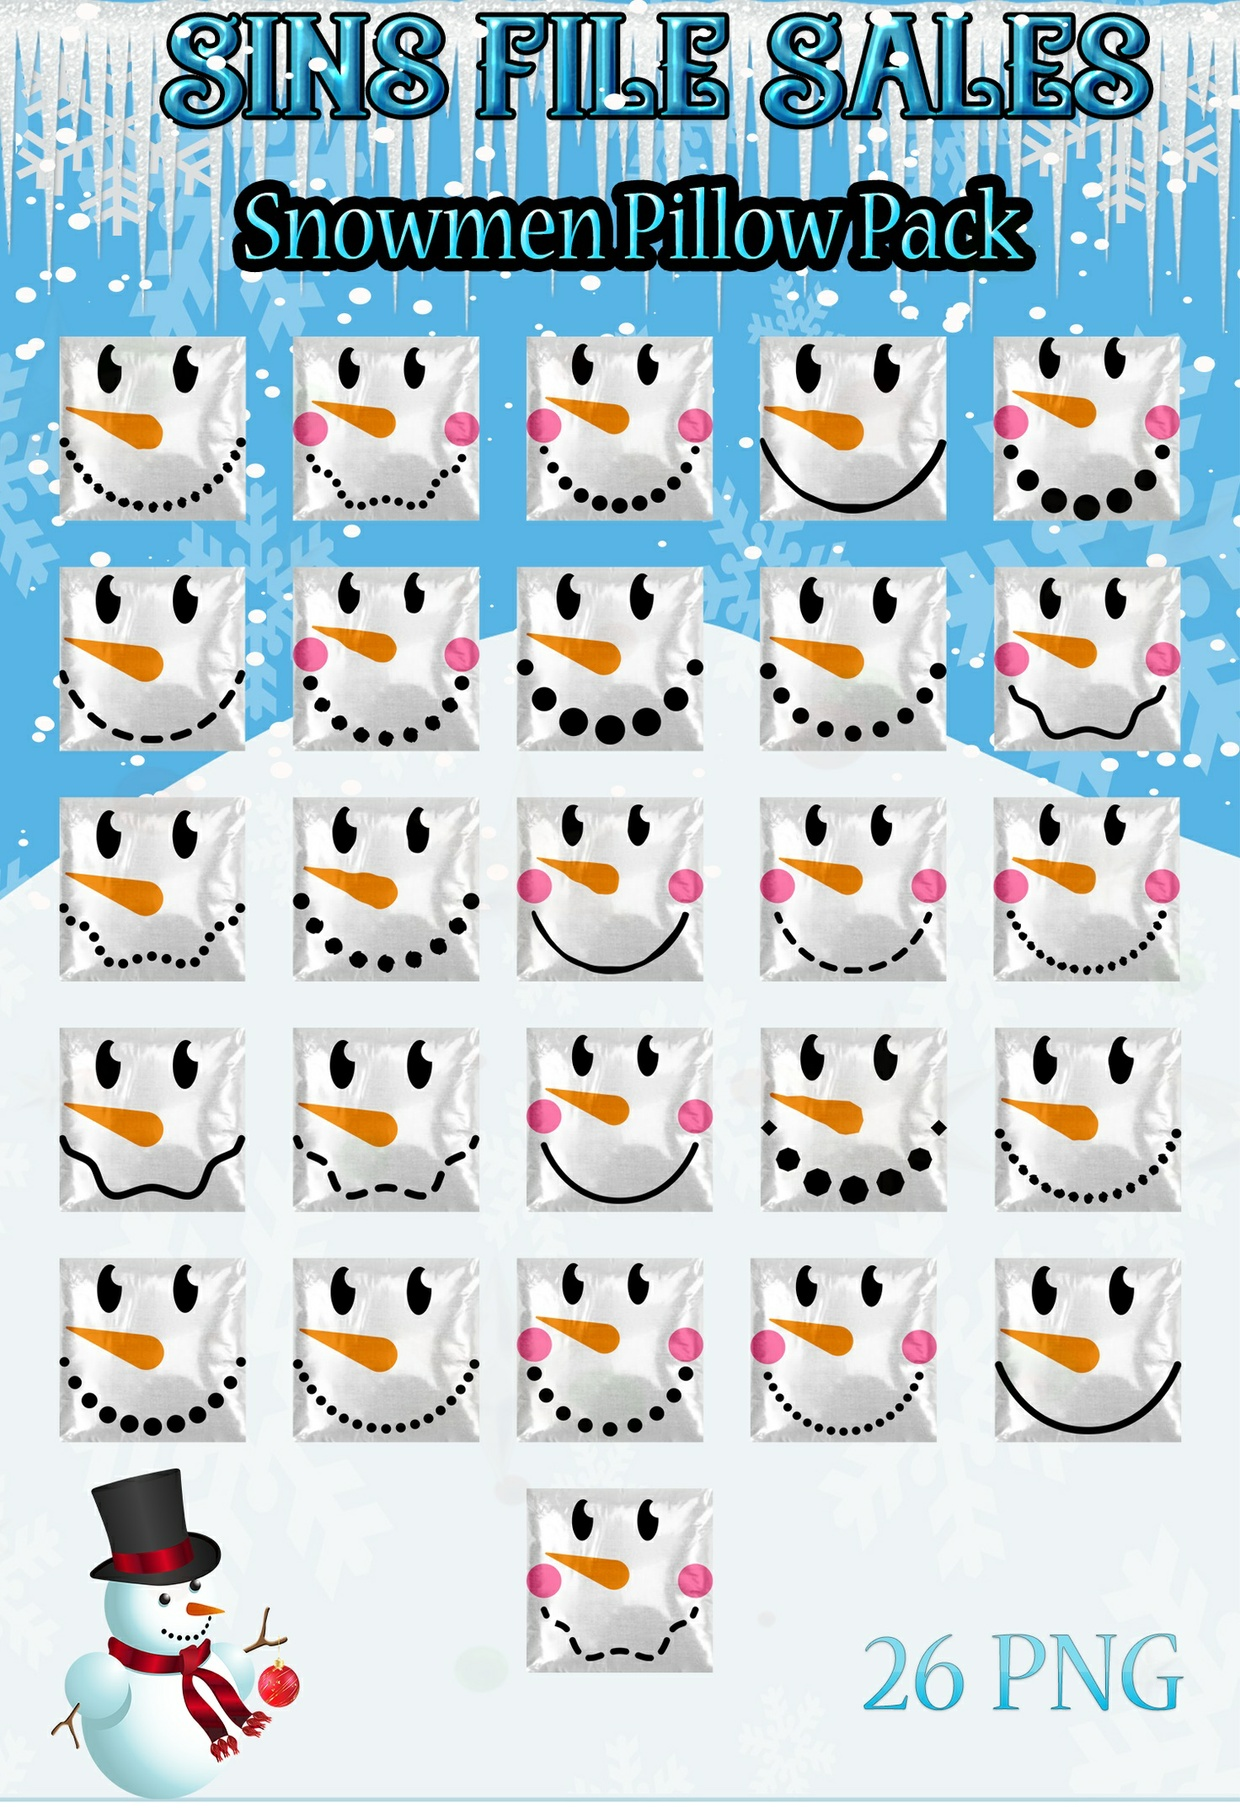 Snowmen Pillow Pack *2017